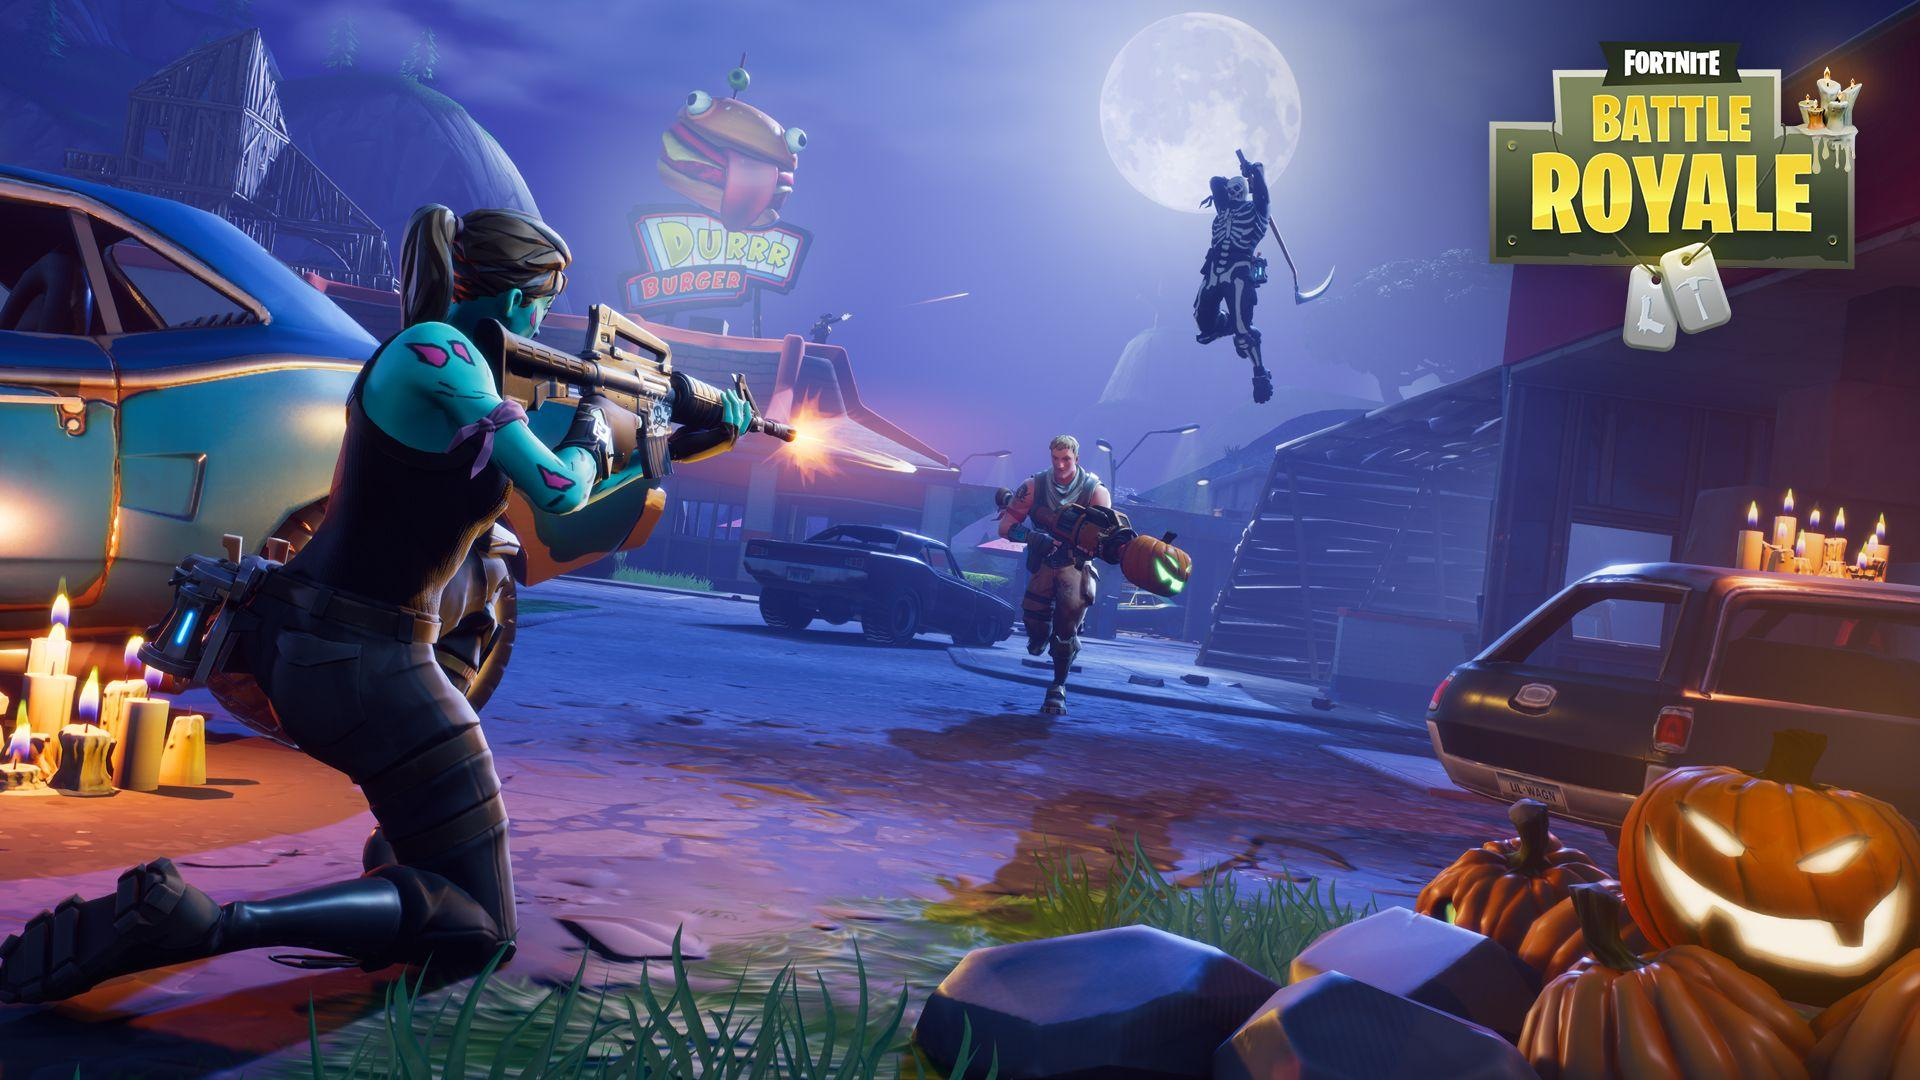 Image result for fortnite battle royale wallpaper